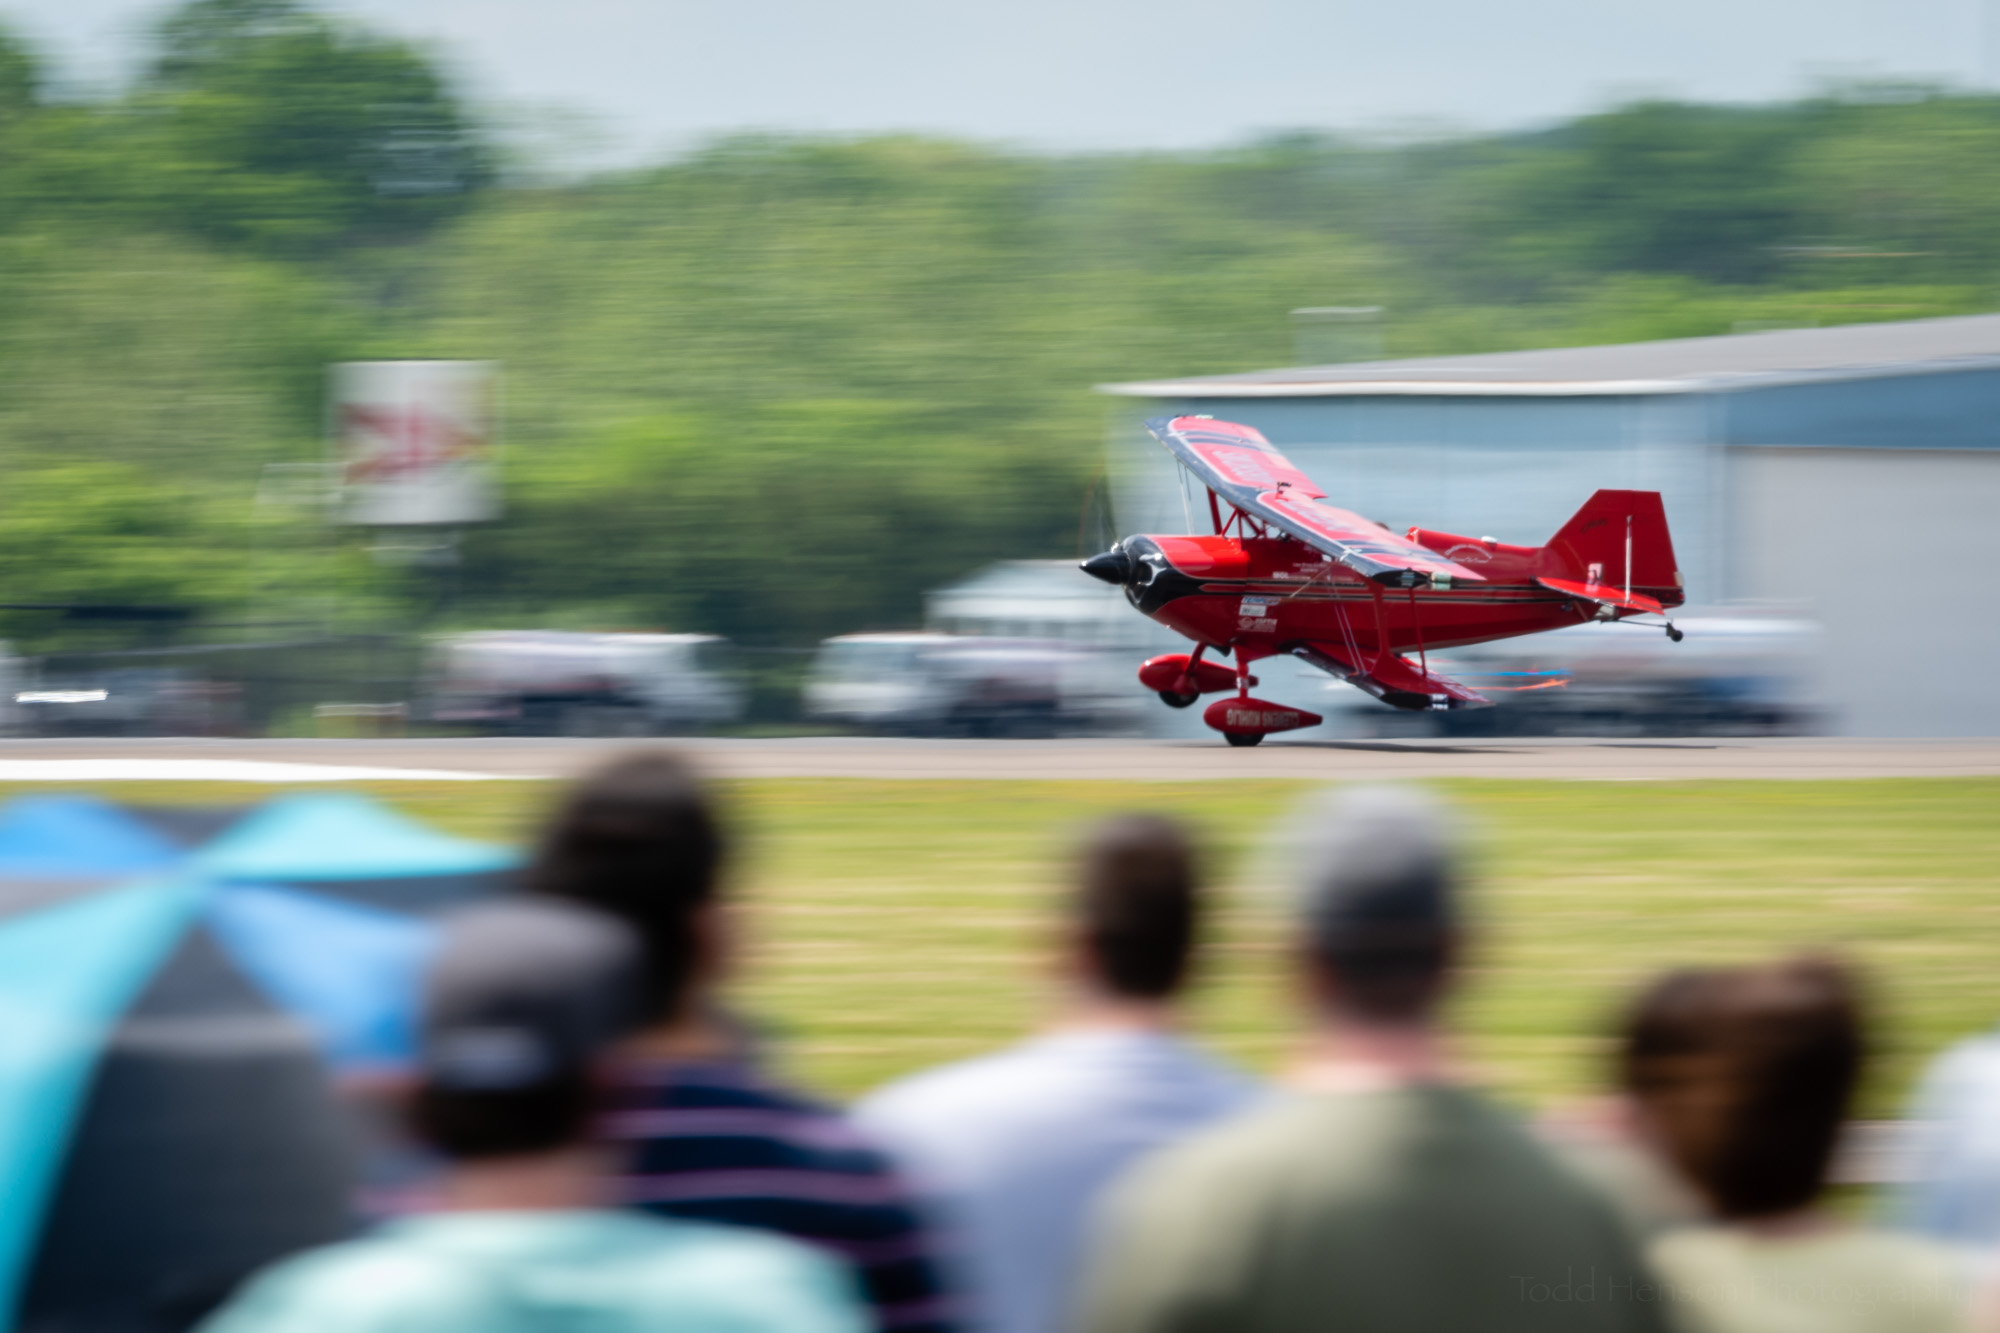 Chef Pitts taking his Pitts S1S down for a 1-wheeled landing.